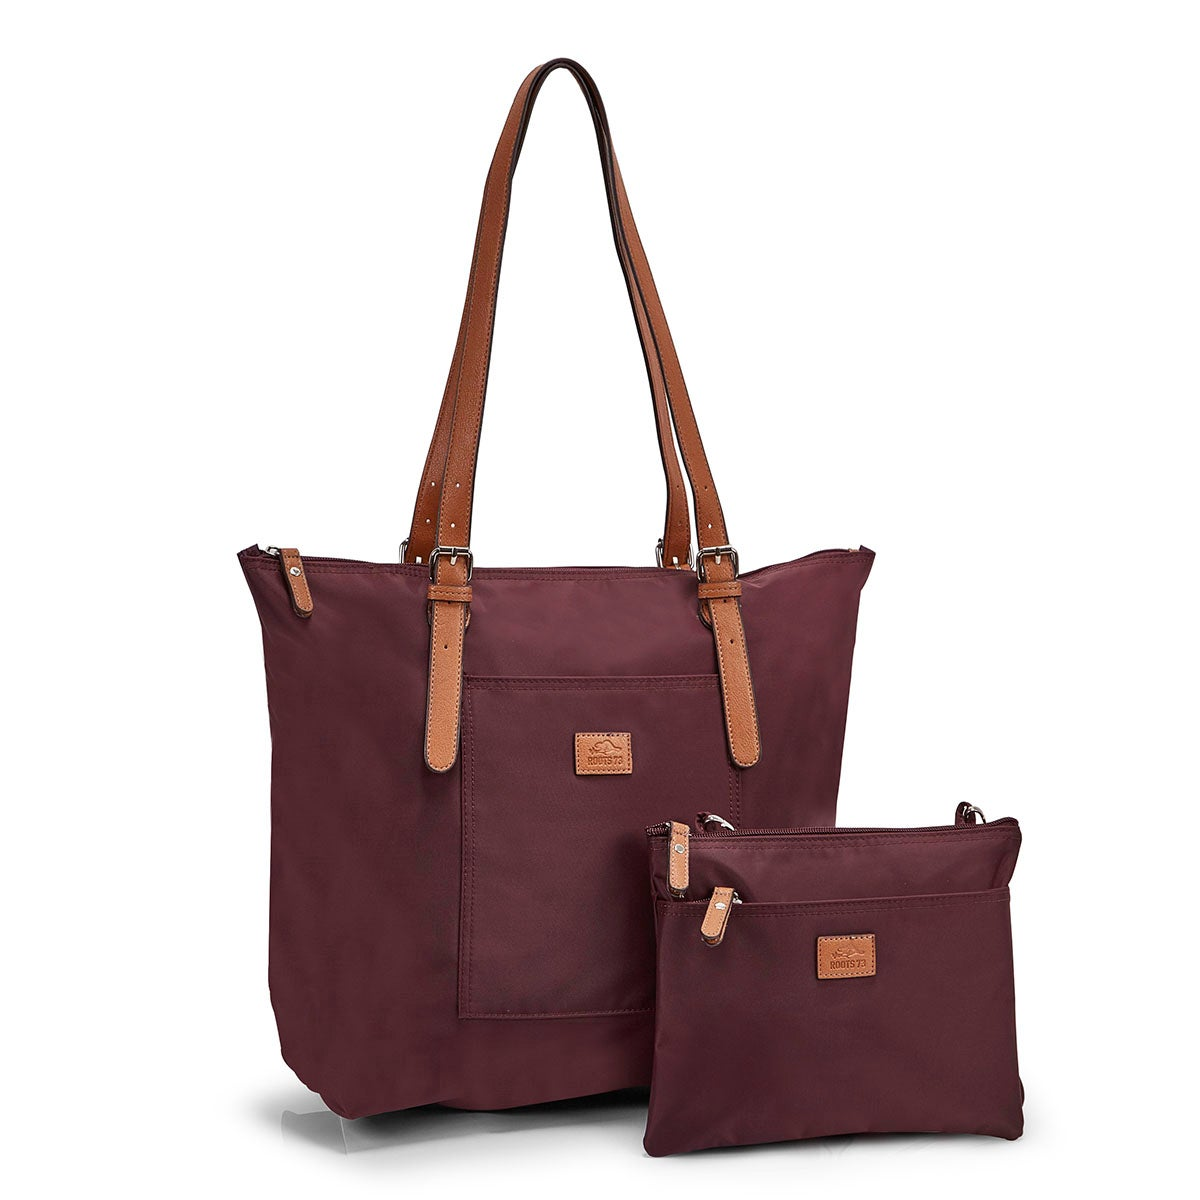 Women's ROOTS73 R4324 burgundy 2 in 1 tote bag